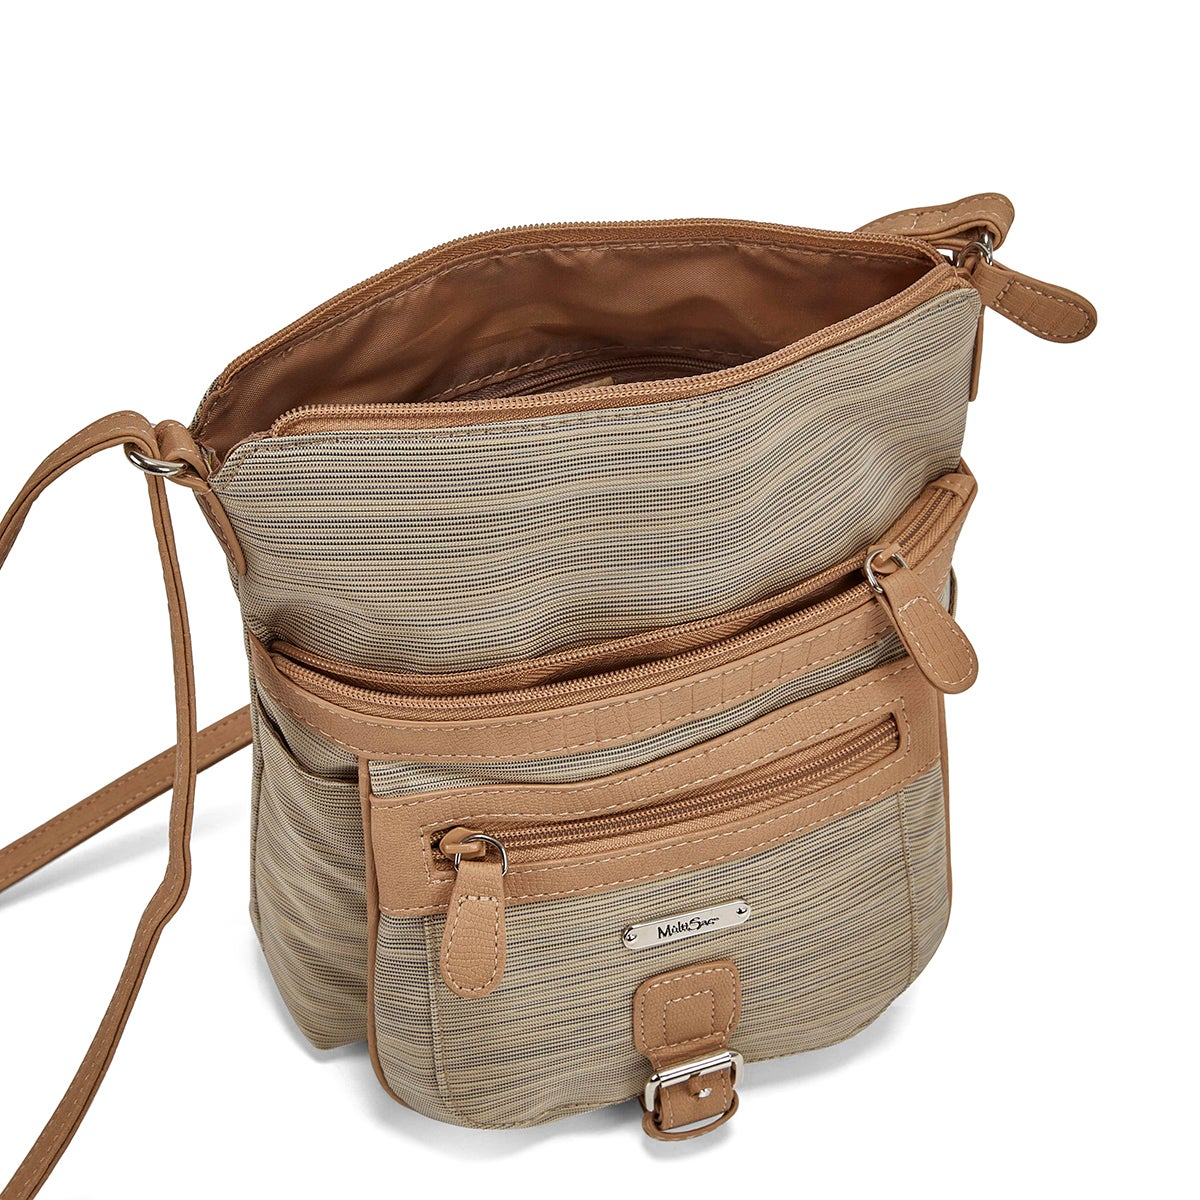 Lds chino/hay top zip crossbody bag